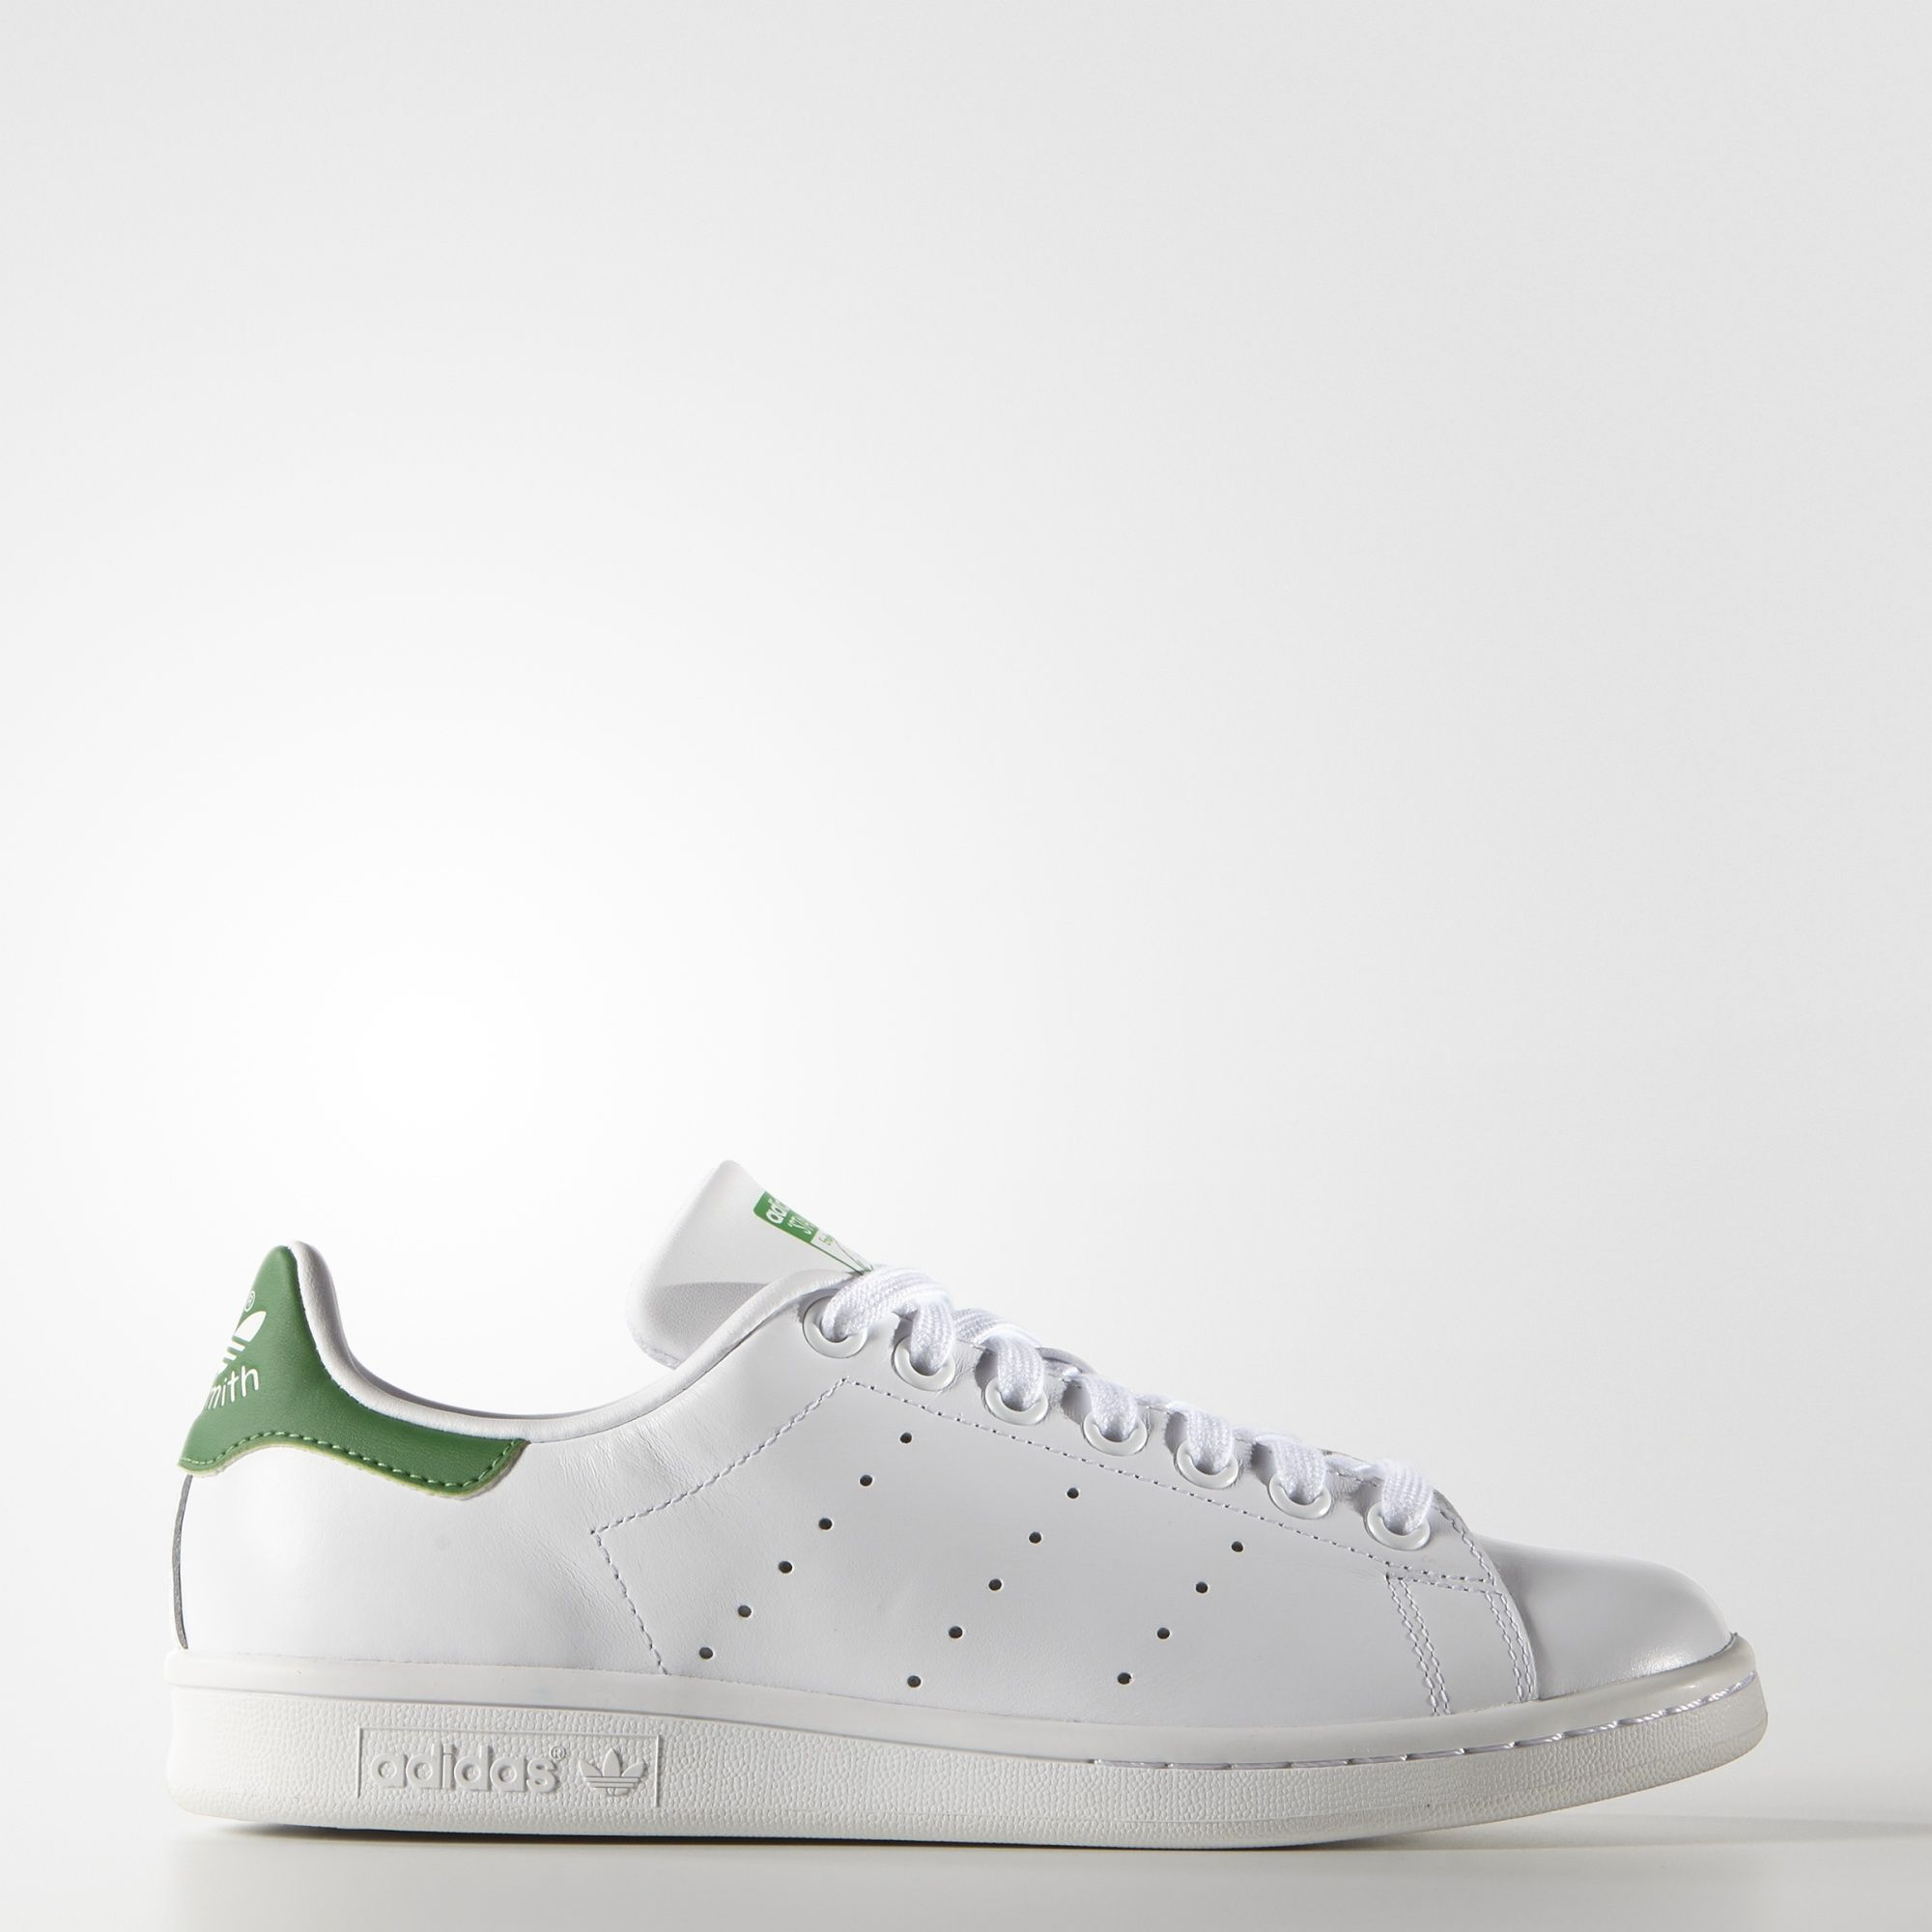 adidas - Stan Smith Shoes, Women's Size 6.